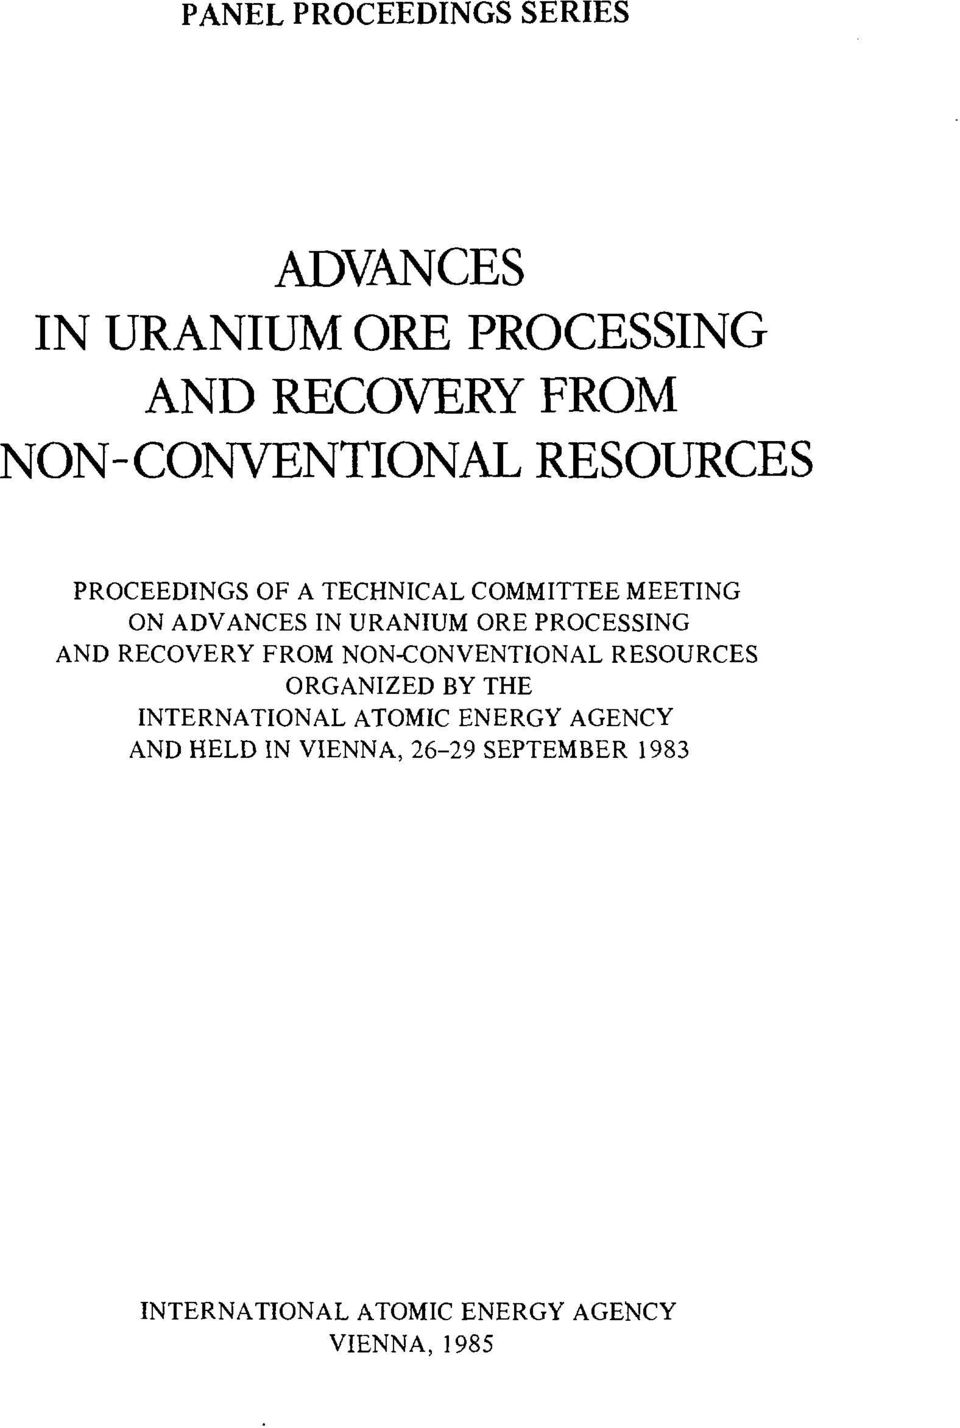 URANIUM ORE PROCESSING AND RECOVERY FROM NON-CONVENTIONAL RESOURCES ORGANIZED BY THE